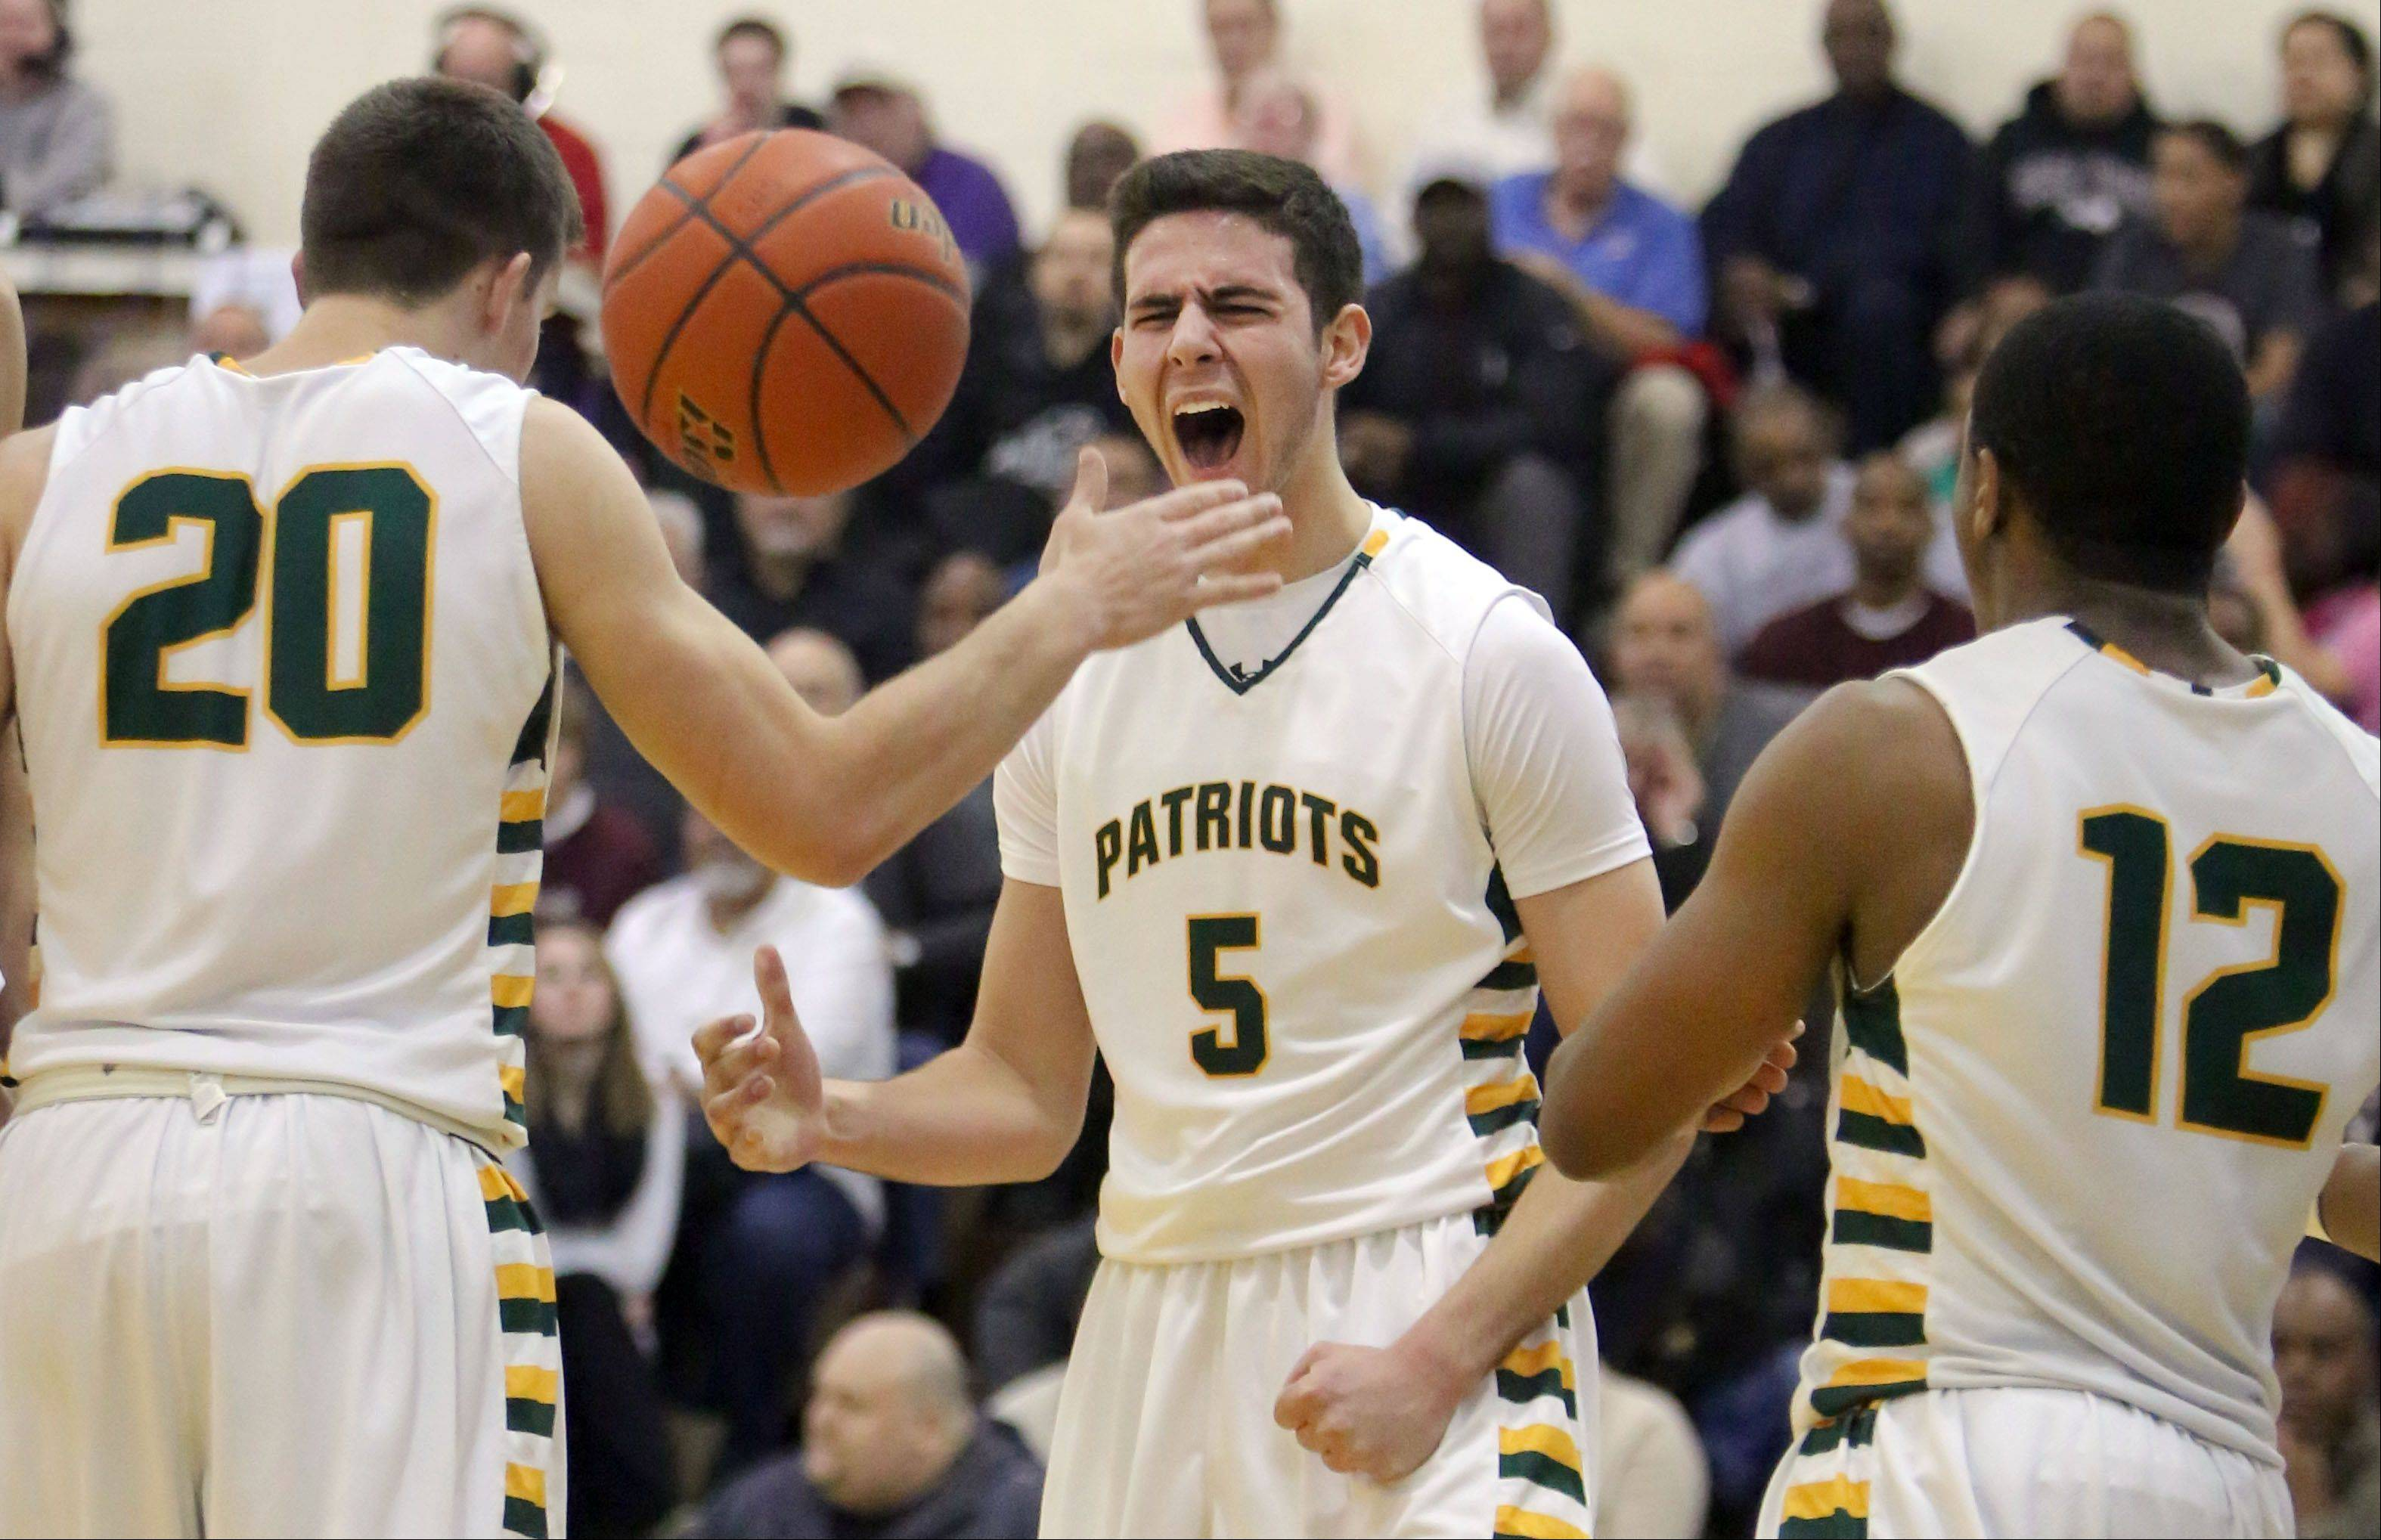 Stevenson's Sam Panitch (5) celebrates with Matt Morrissey, left, and Matt Johnson during NSC Lake play Friday night at Stevenson.